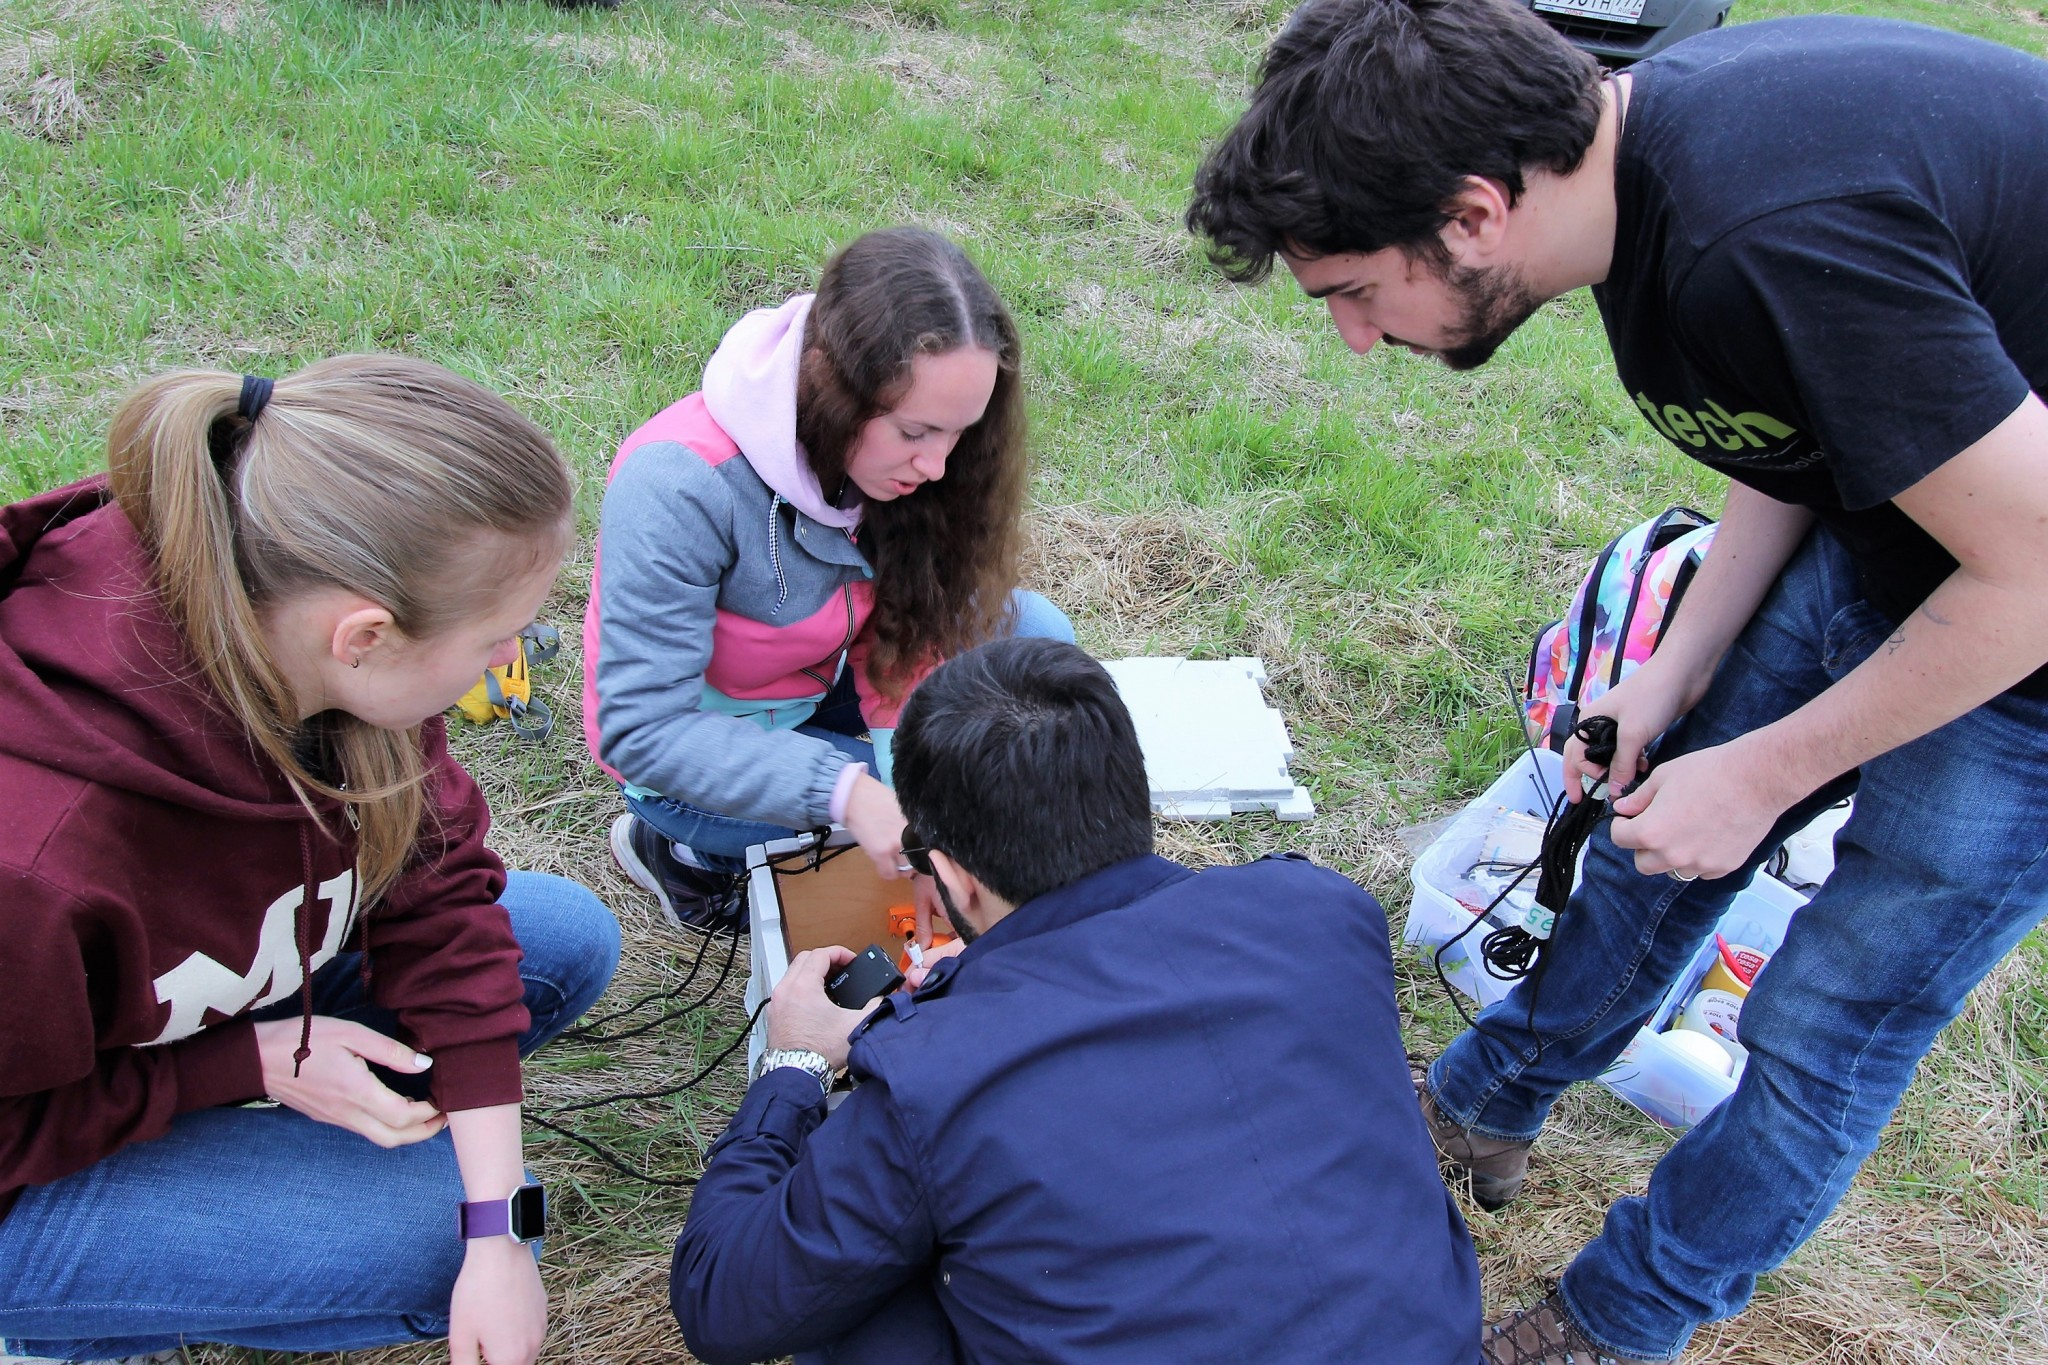 A team of students, including (from left) Anastasia Stelvaga, Olga Danko, Nicola Garzaniti and Raffaele Gradini prepare their payload for launch. Photo: Skoltech.